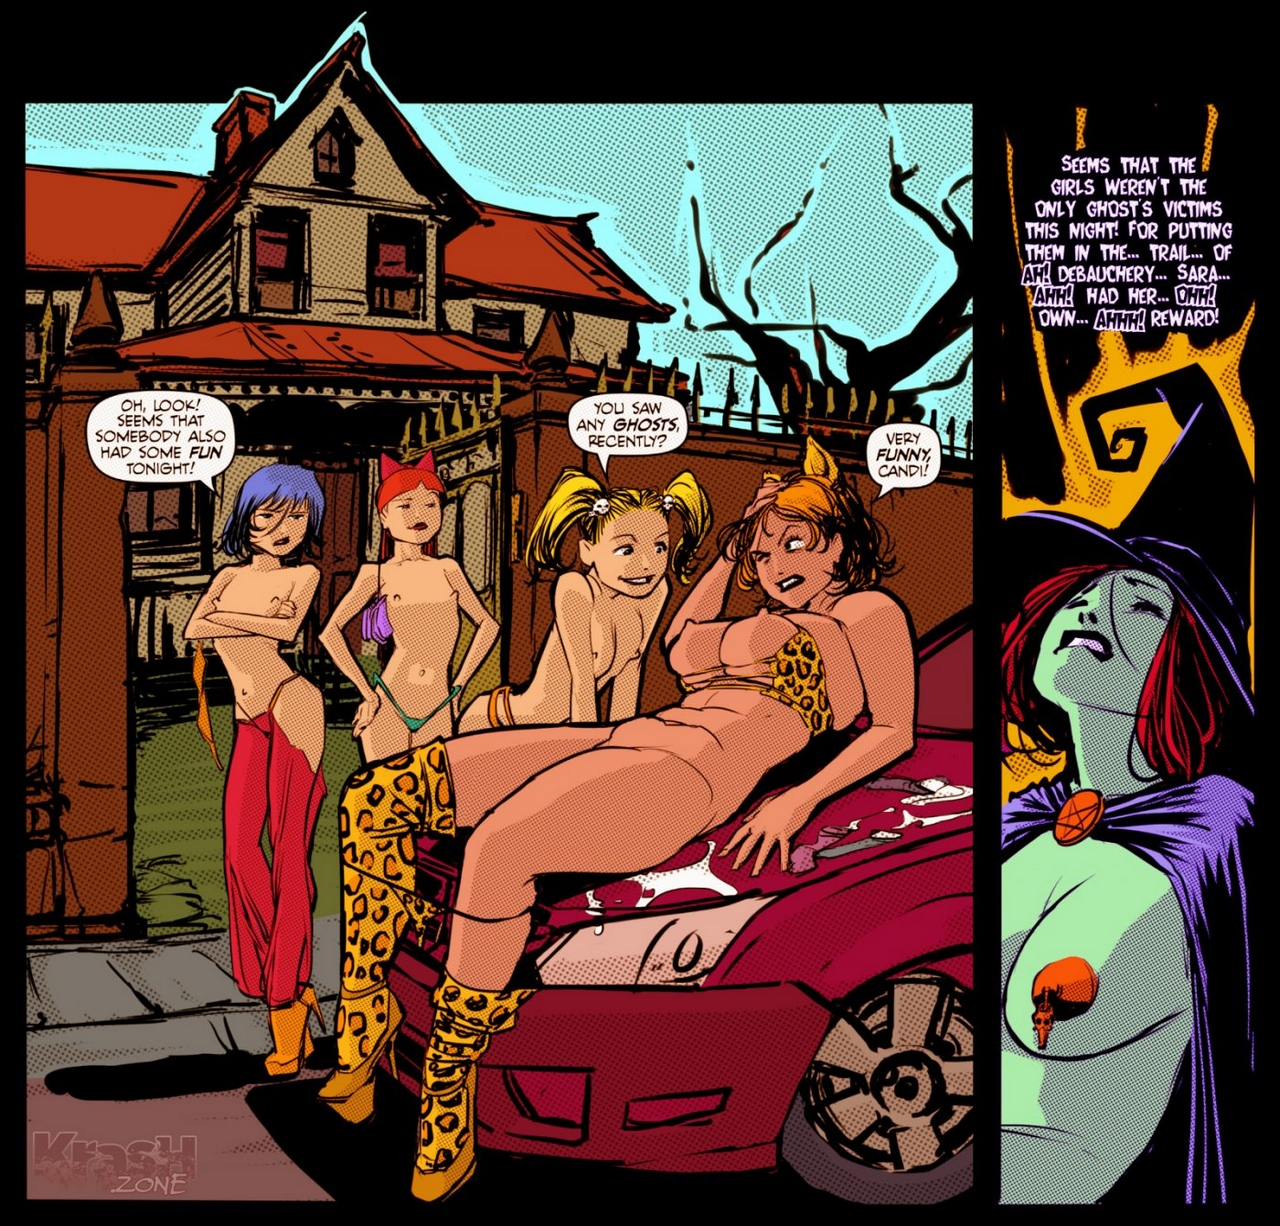 Dick-Or-Treat 25 free sex comic